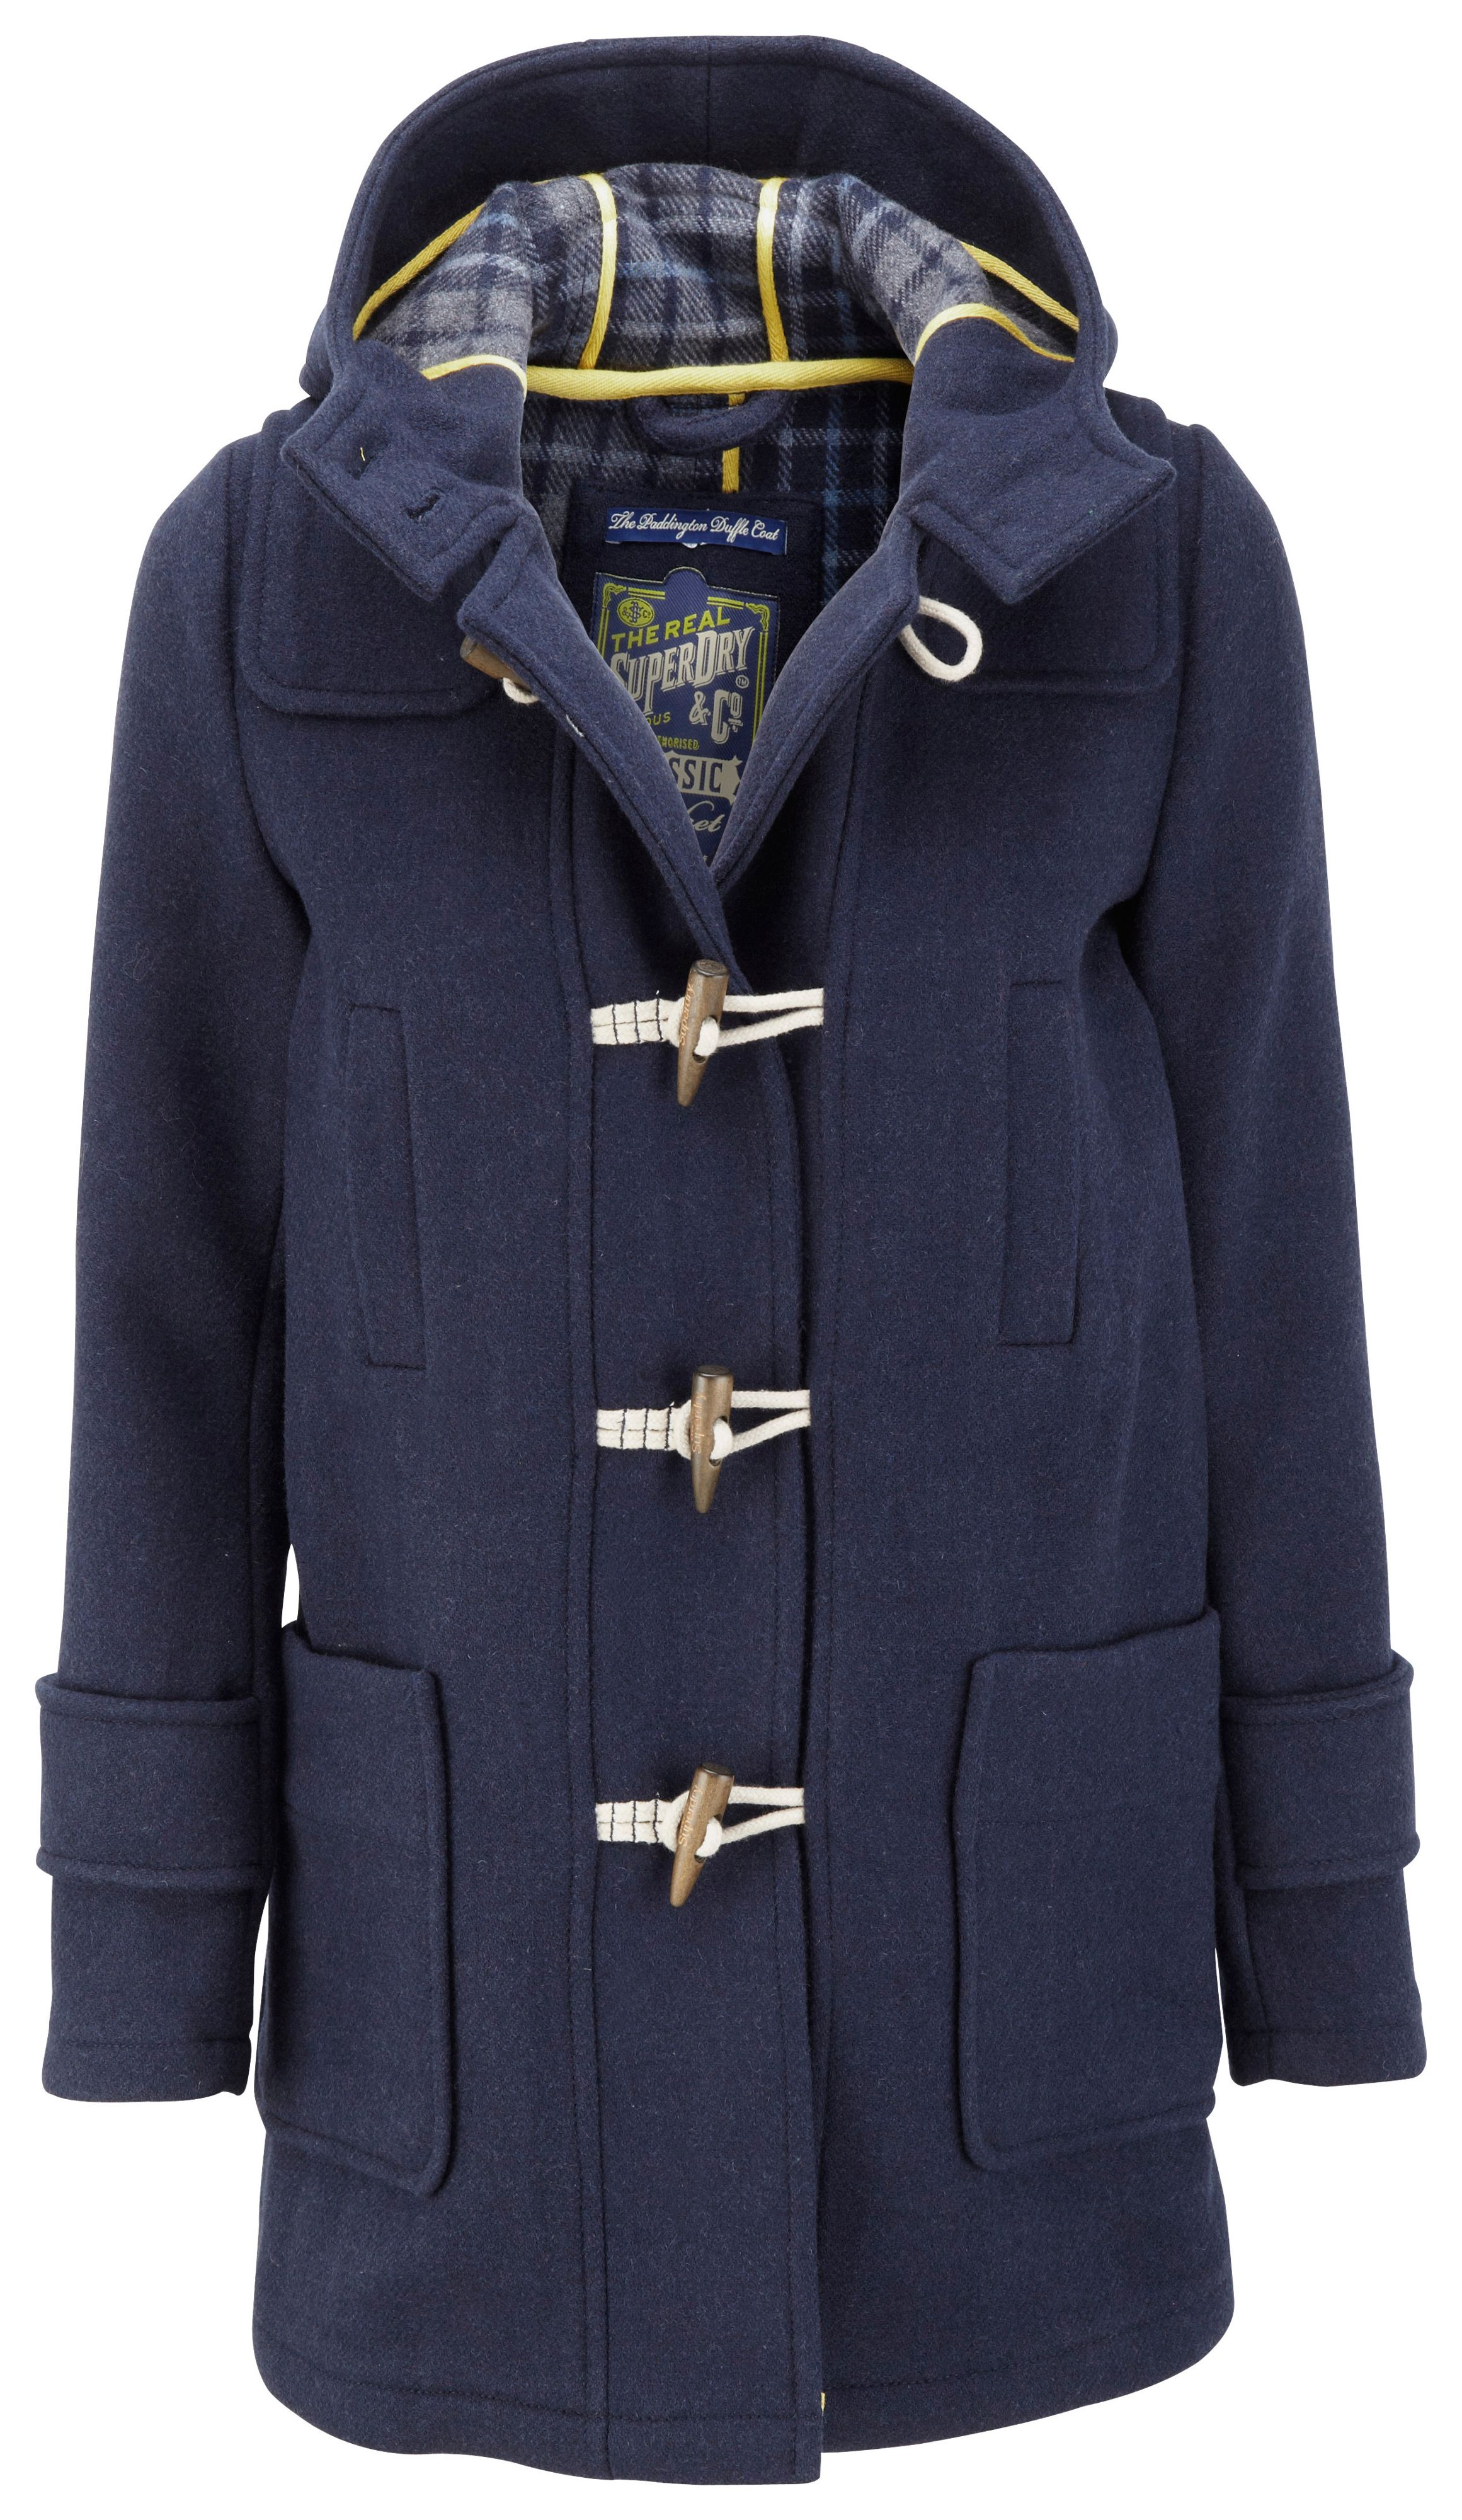 Paddington duffle coat